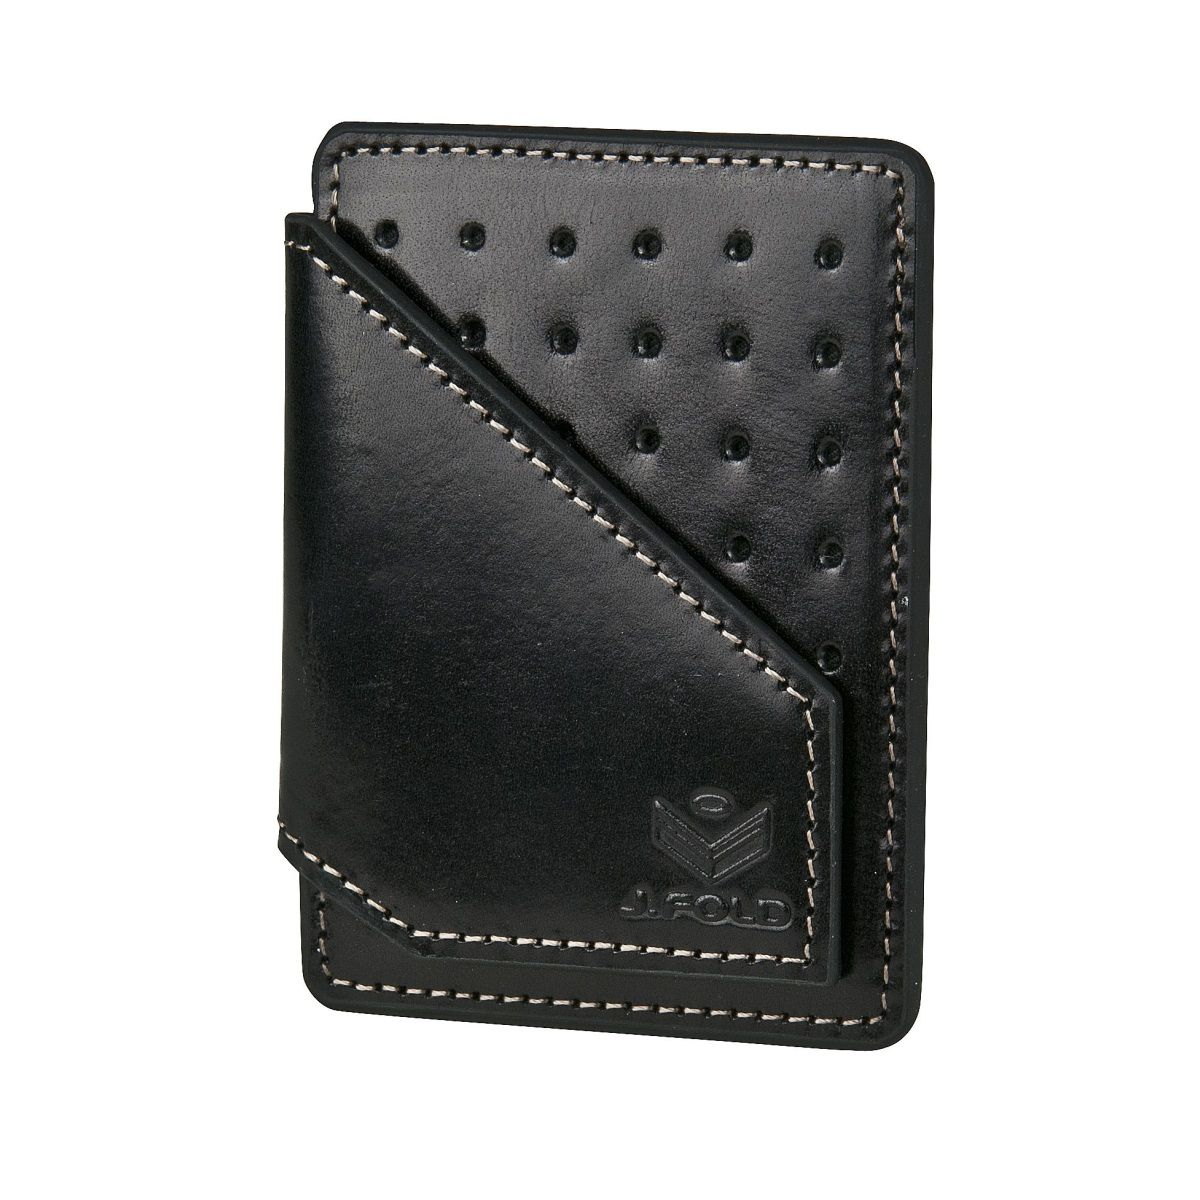 J.FOLD Mag Card Carrier - Black